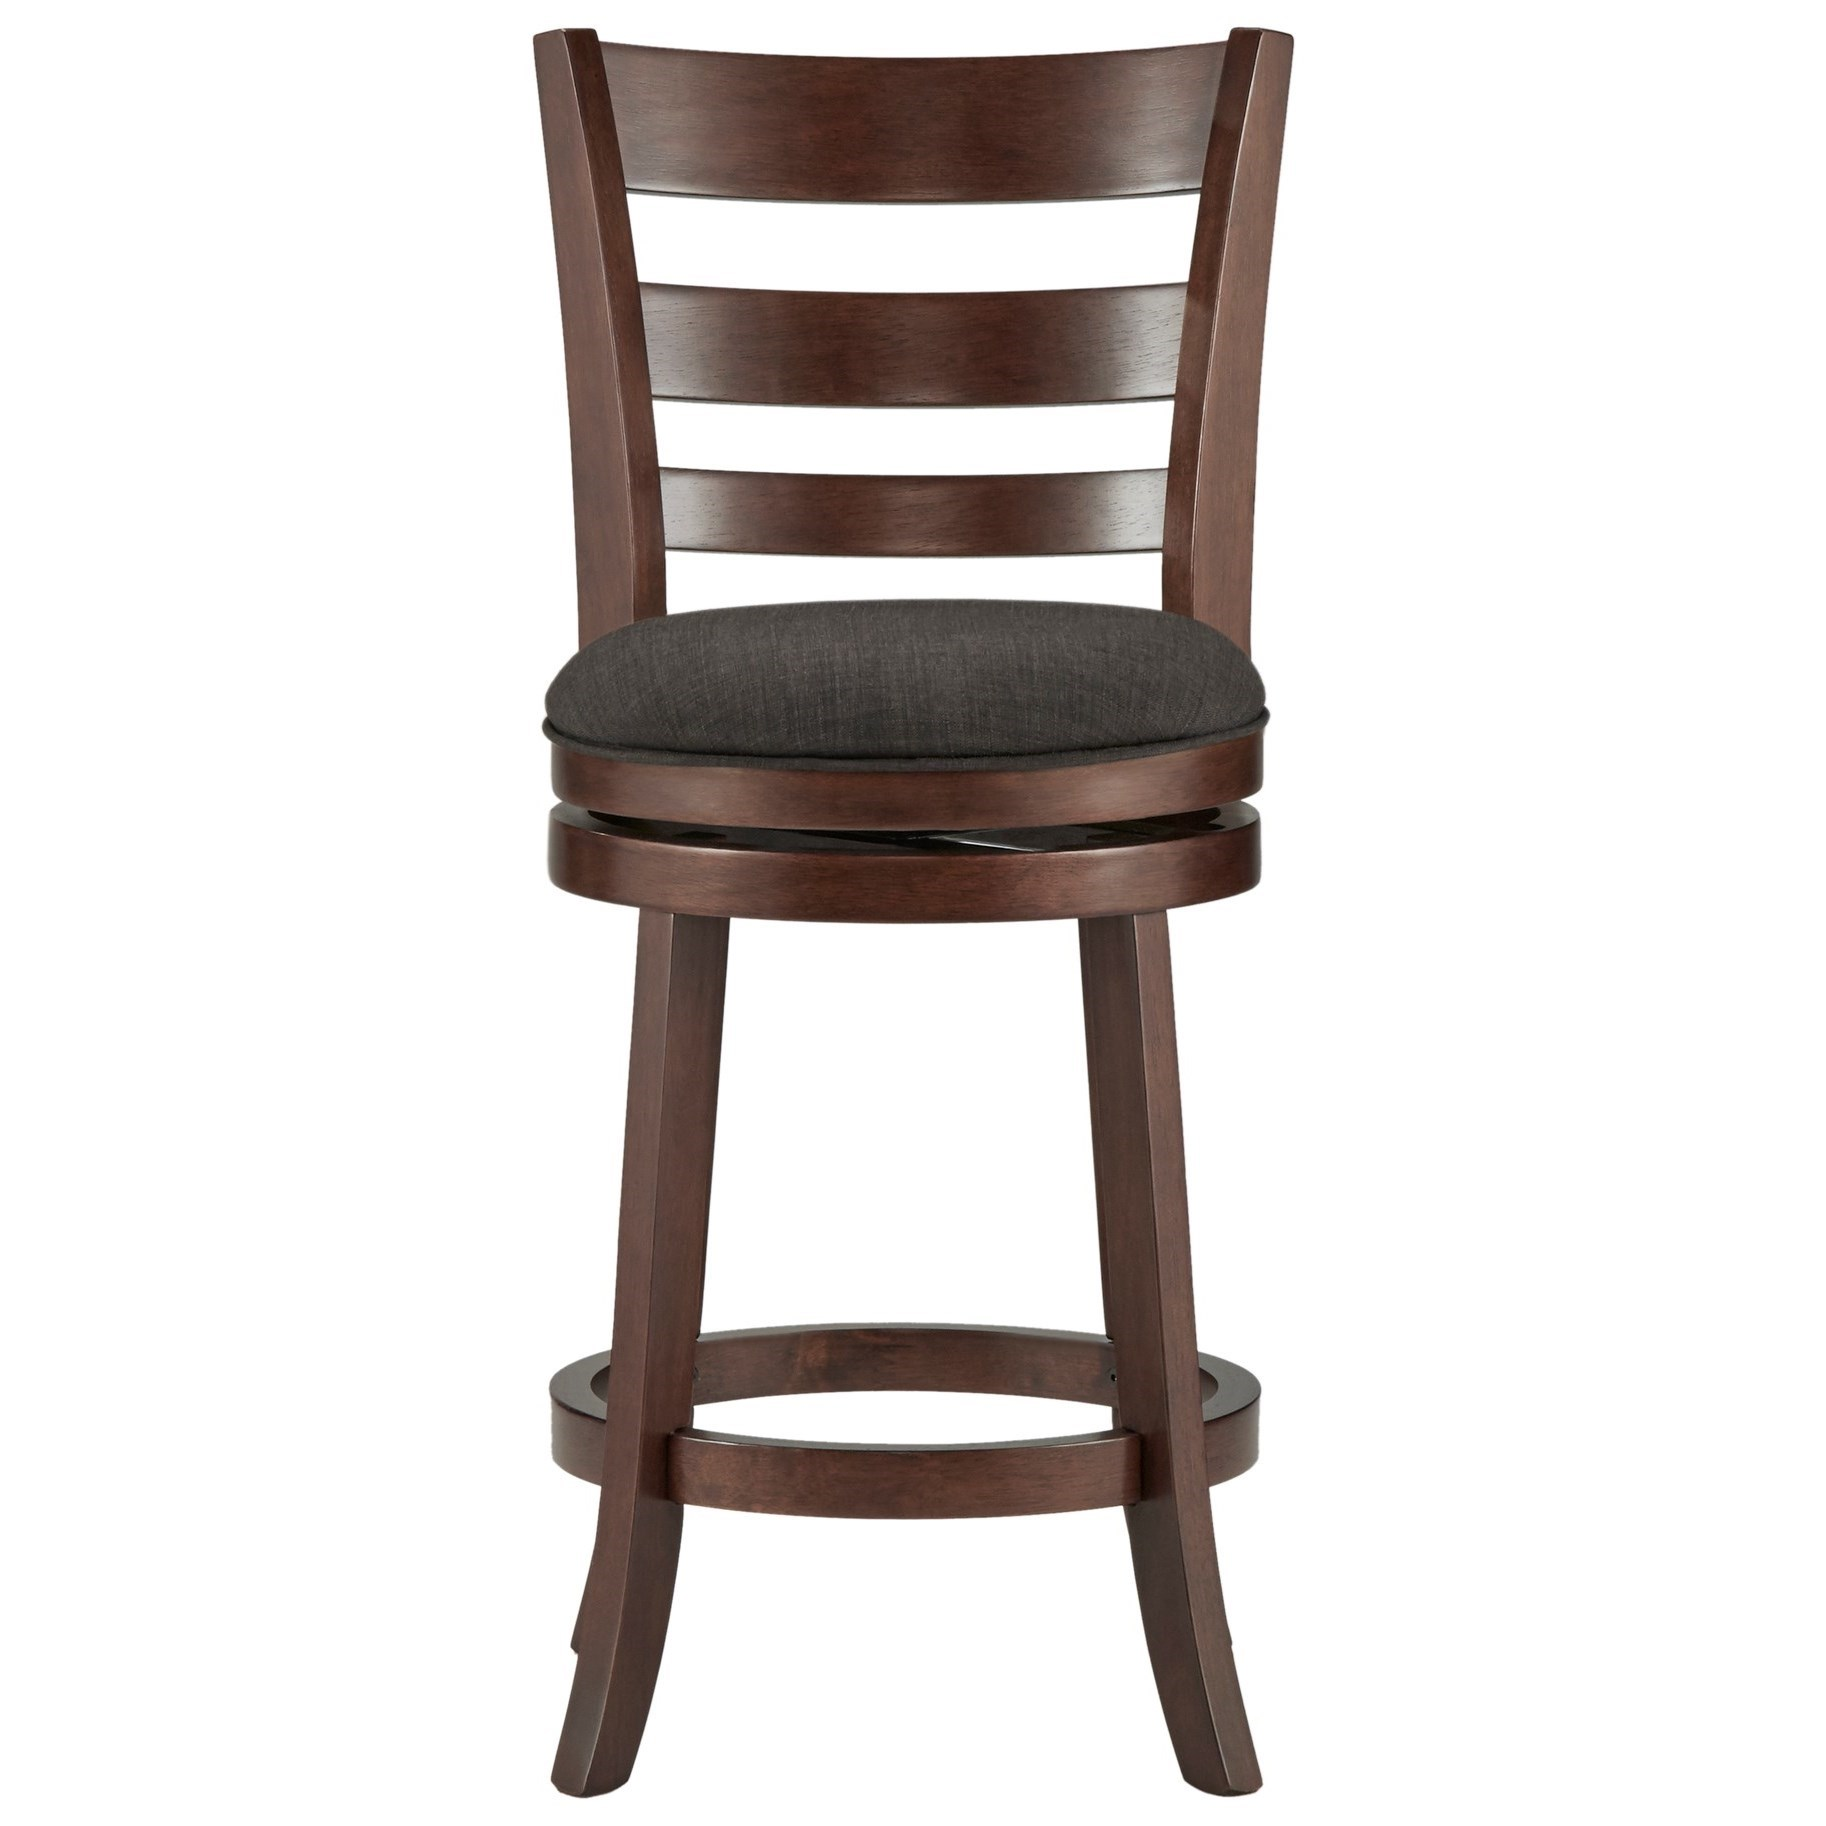 Homelegance Edmond Counter Height Swivel Stool - Item Number: 1144E-24DGL